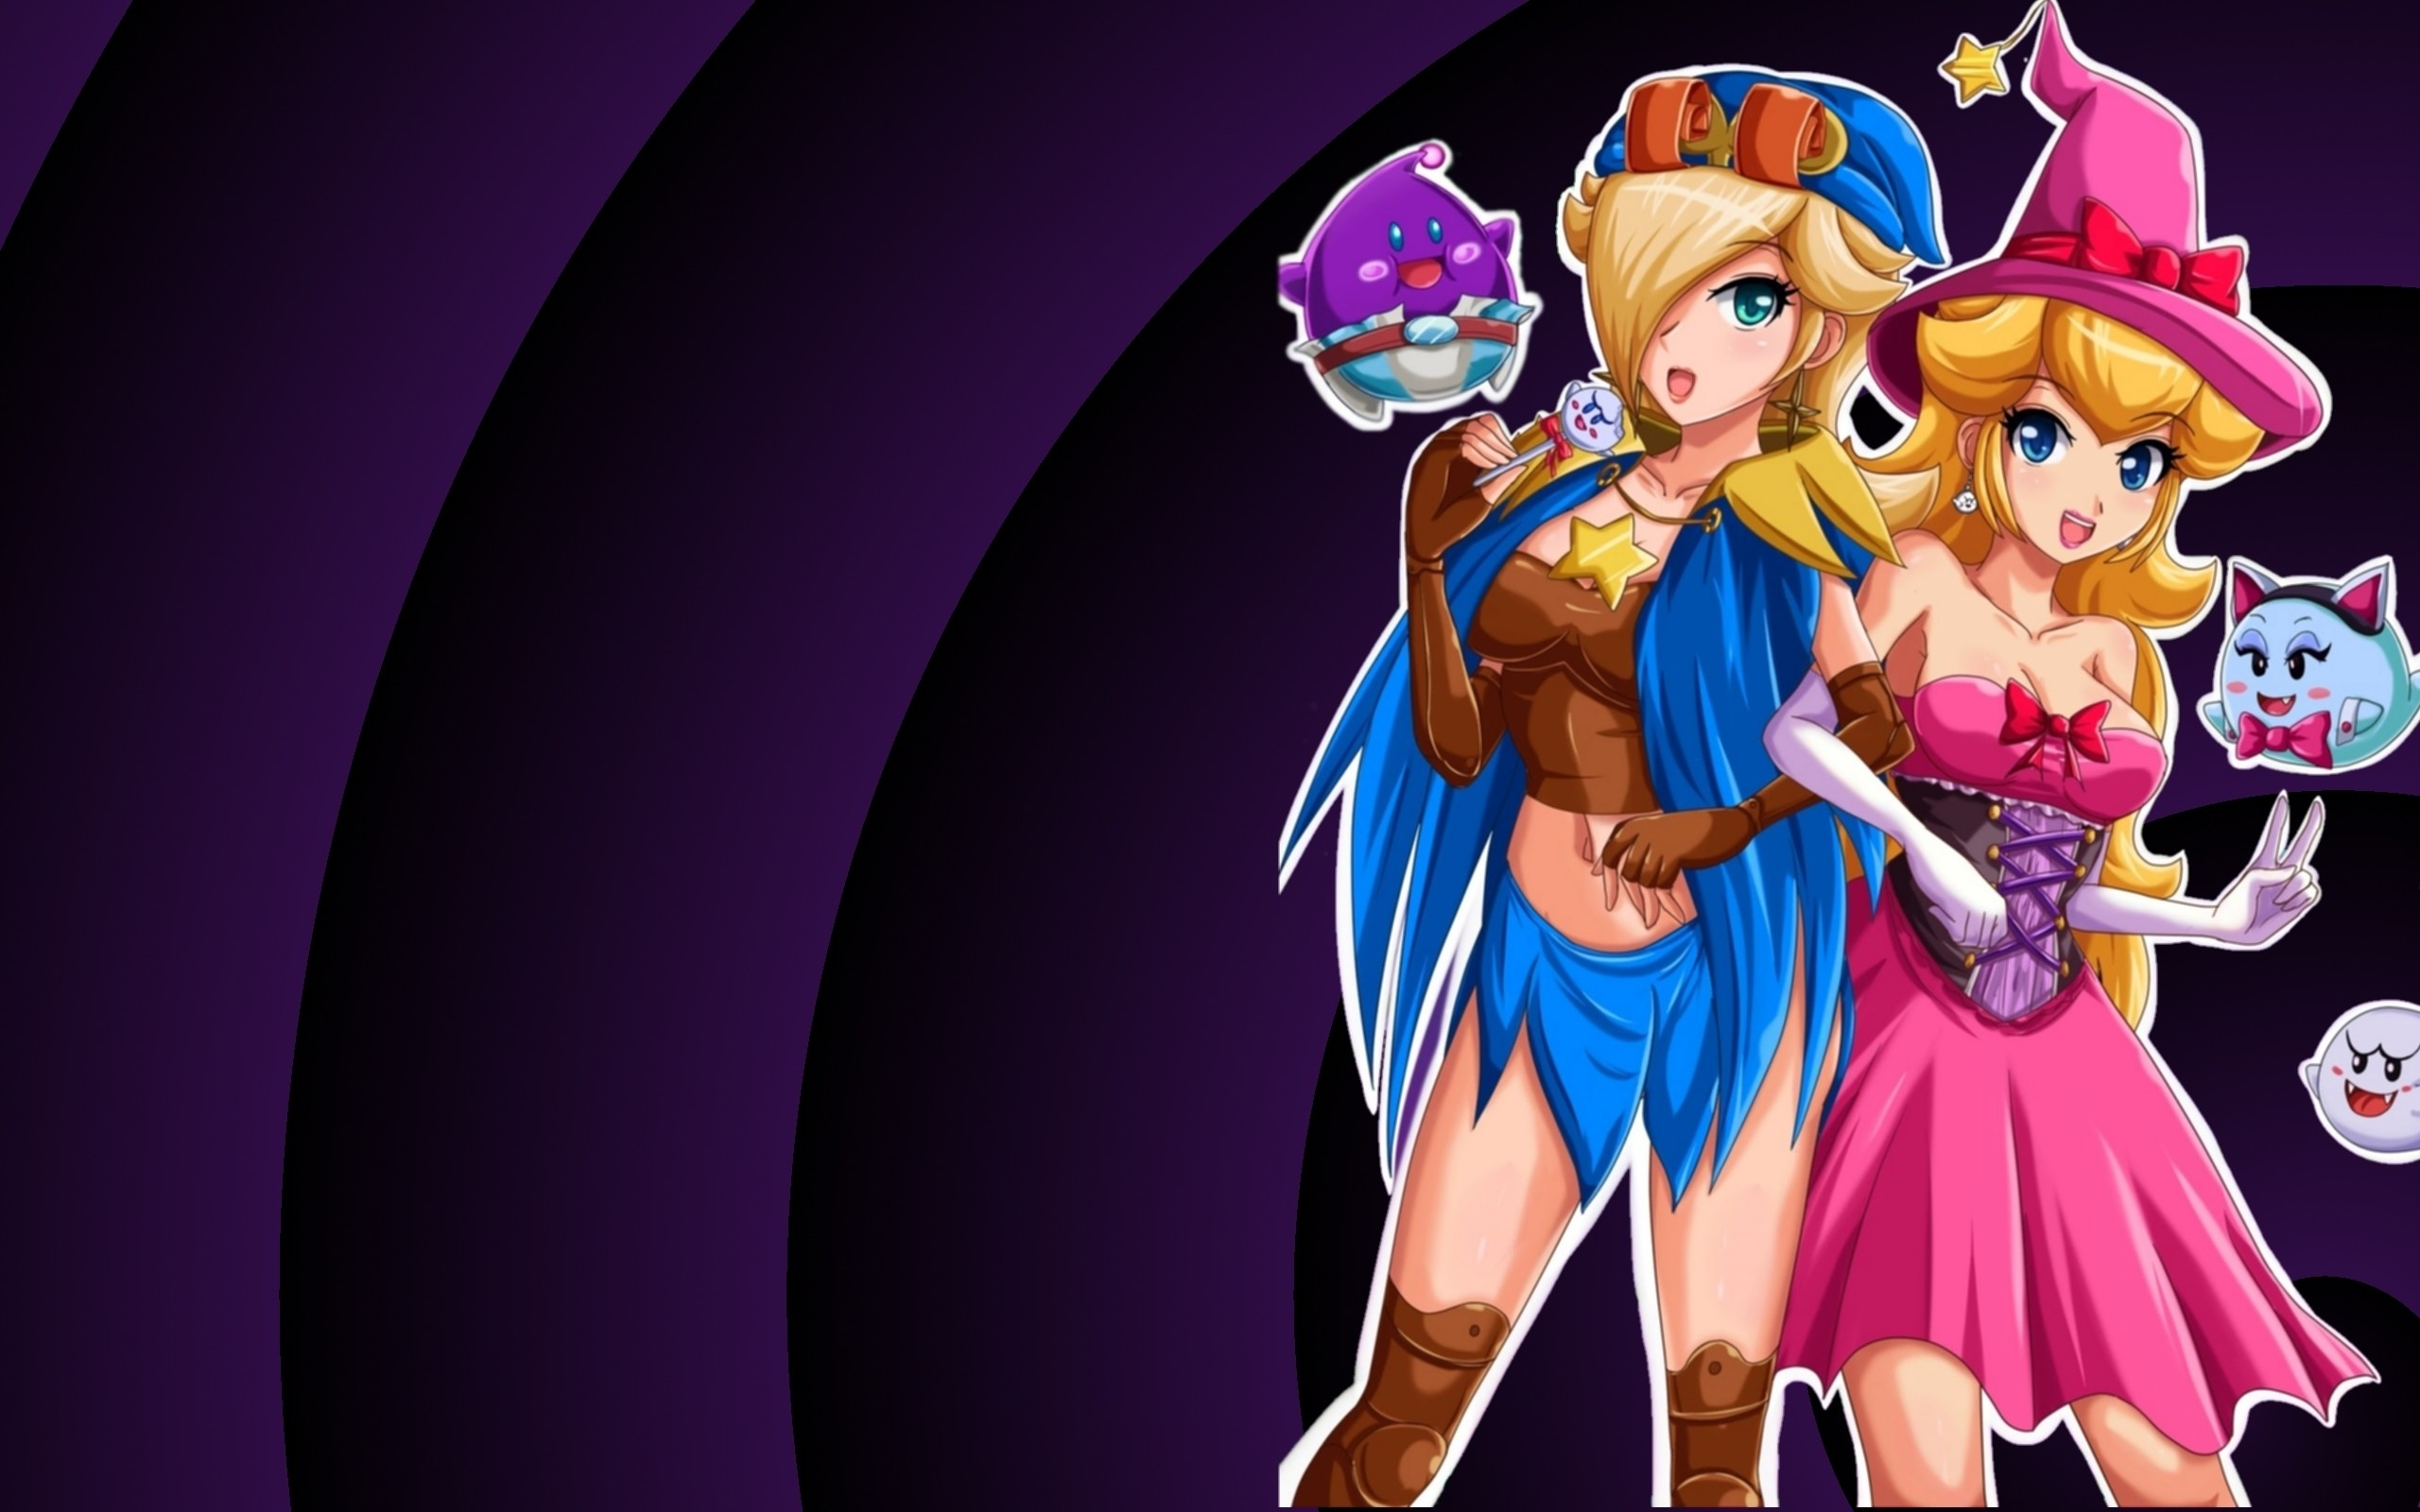 2560x1600 Mario peach rosalina wallpaper